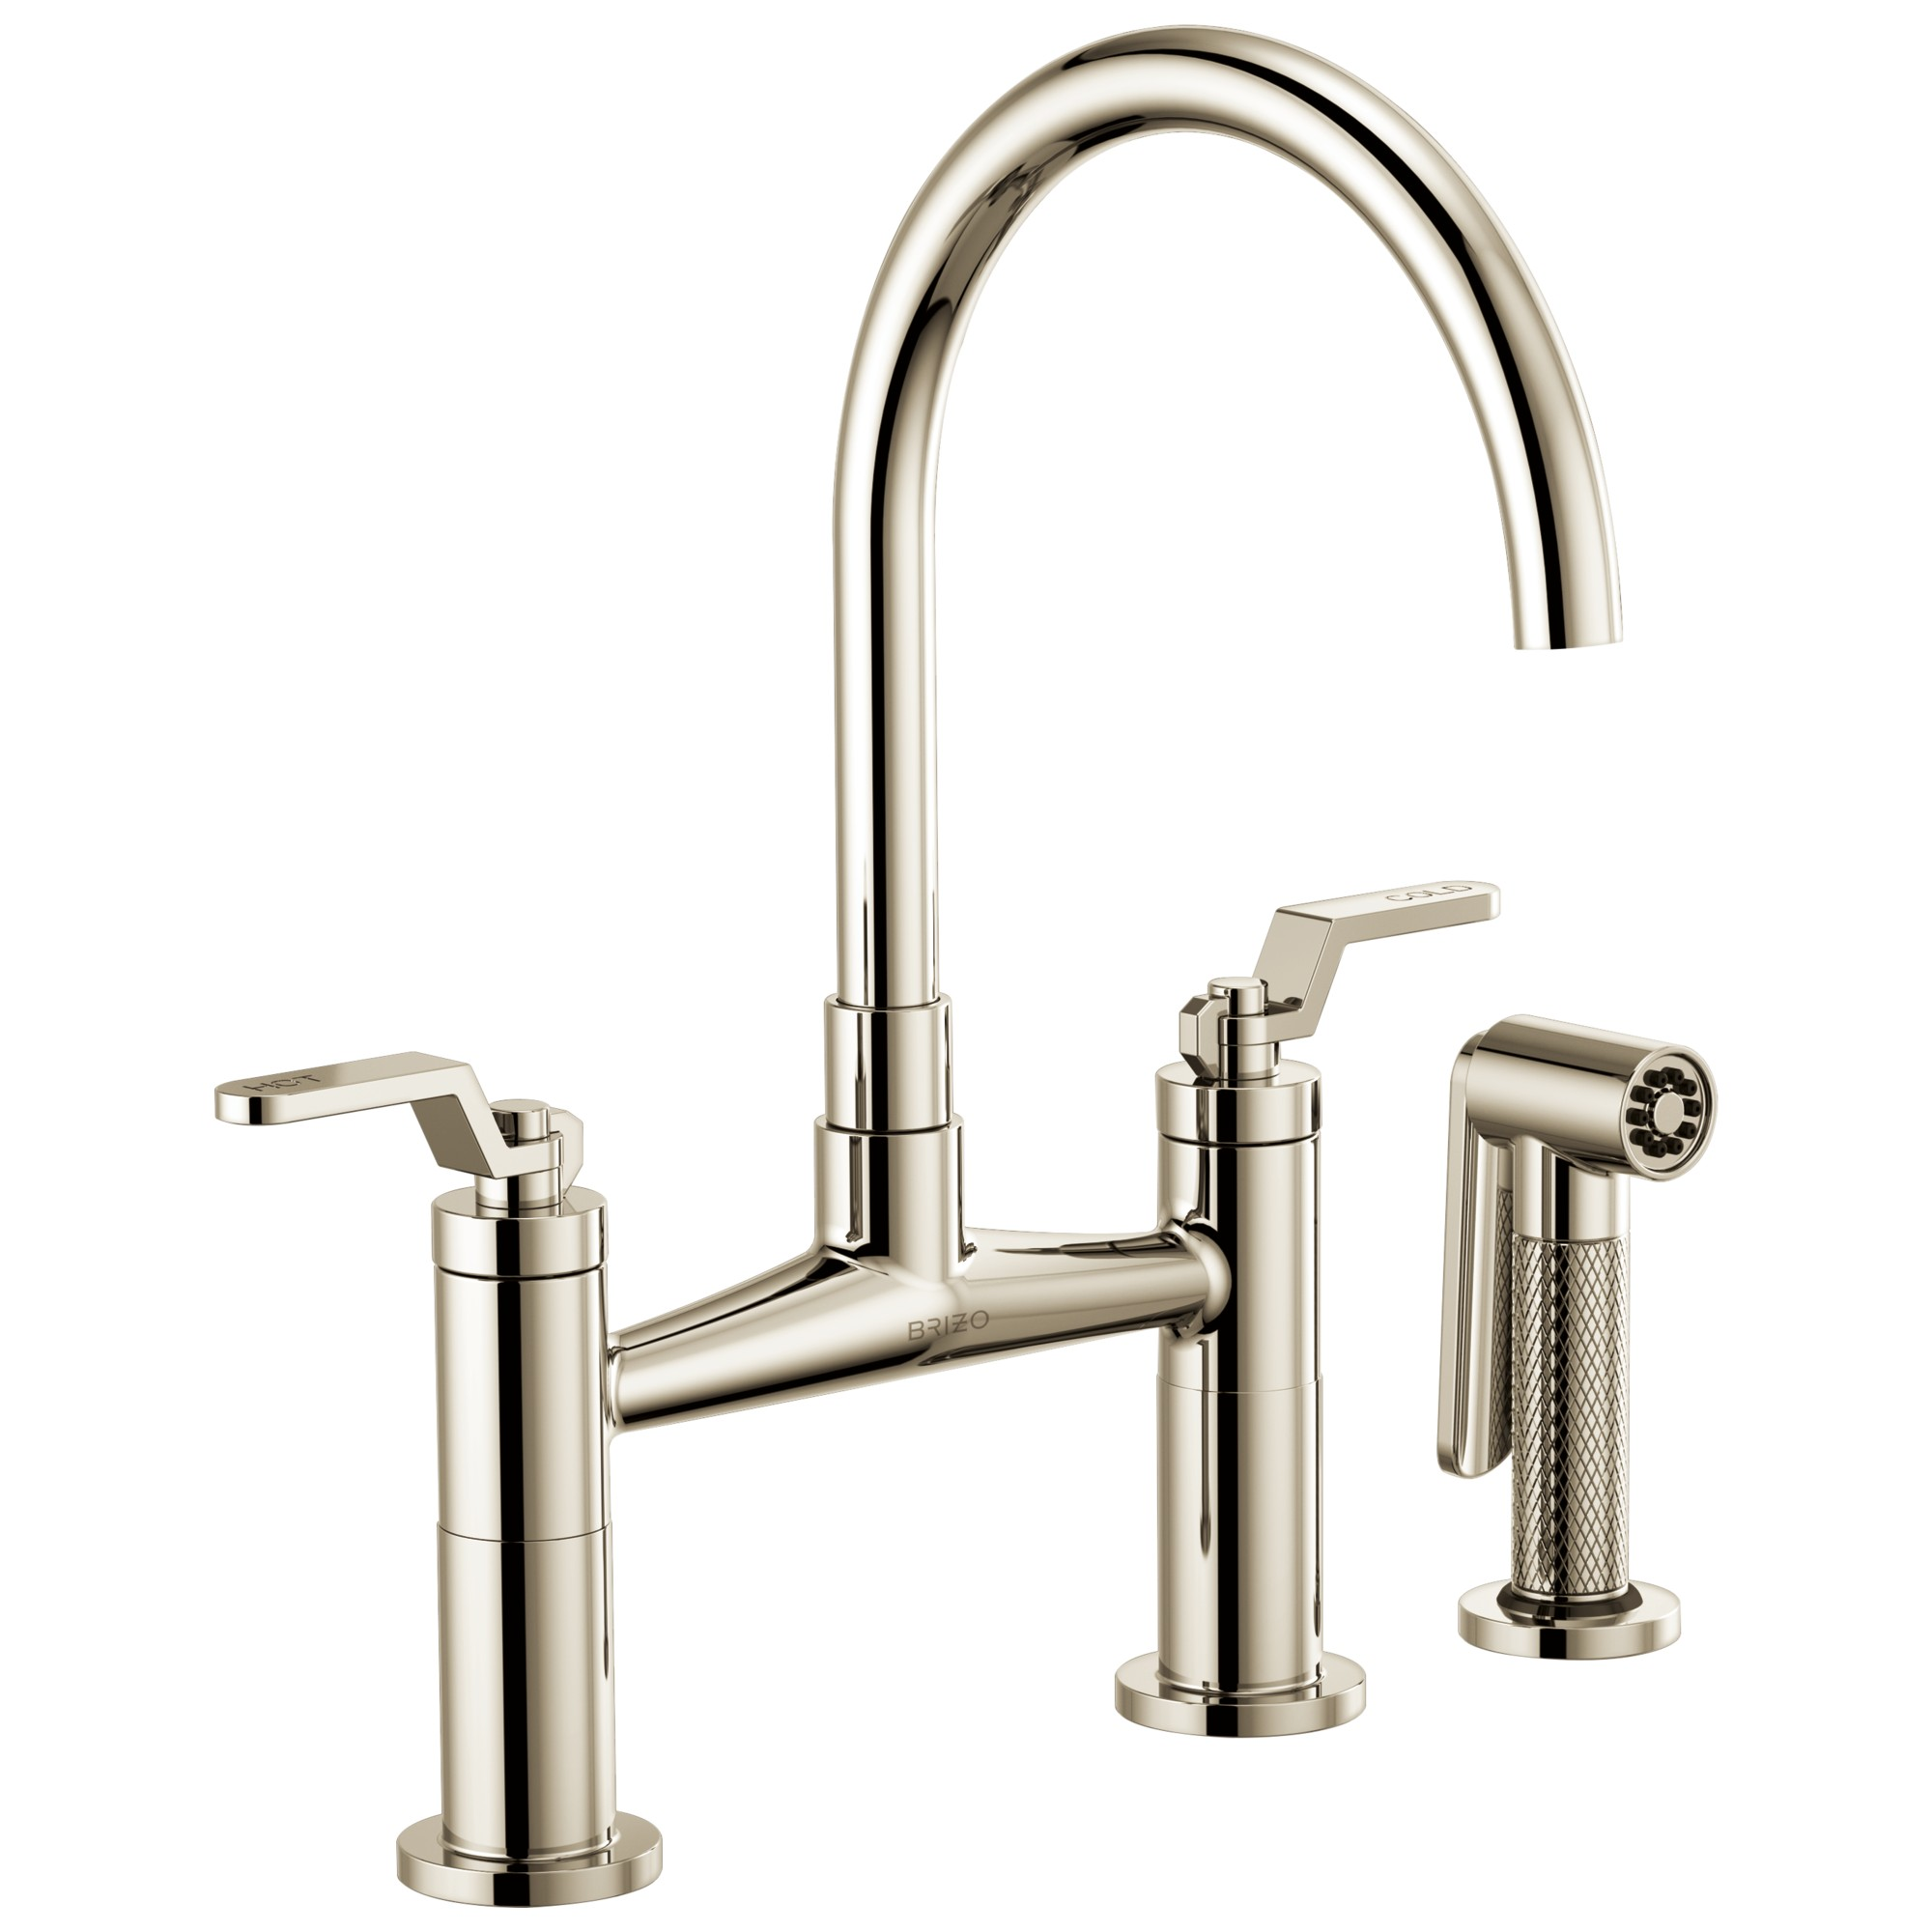 Brizo 62544LF-PN Litze Bridge Faucet with Arc Spout and Industrial Handle - Polished Nickel